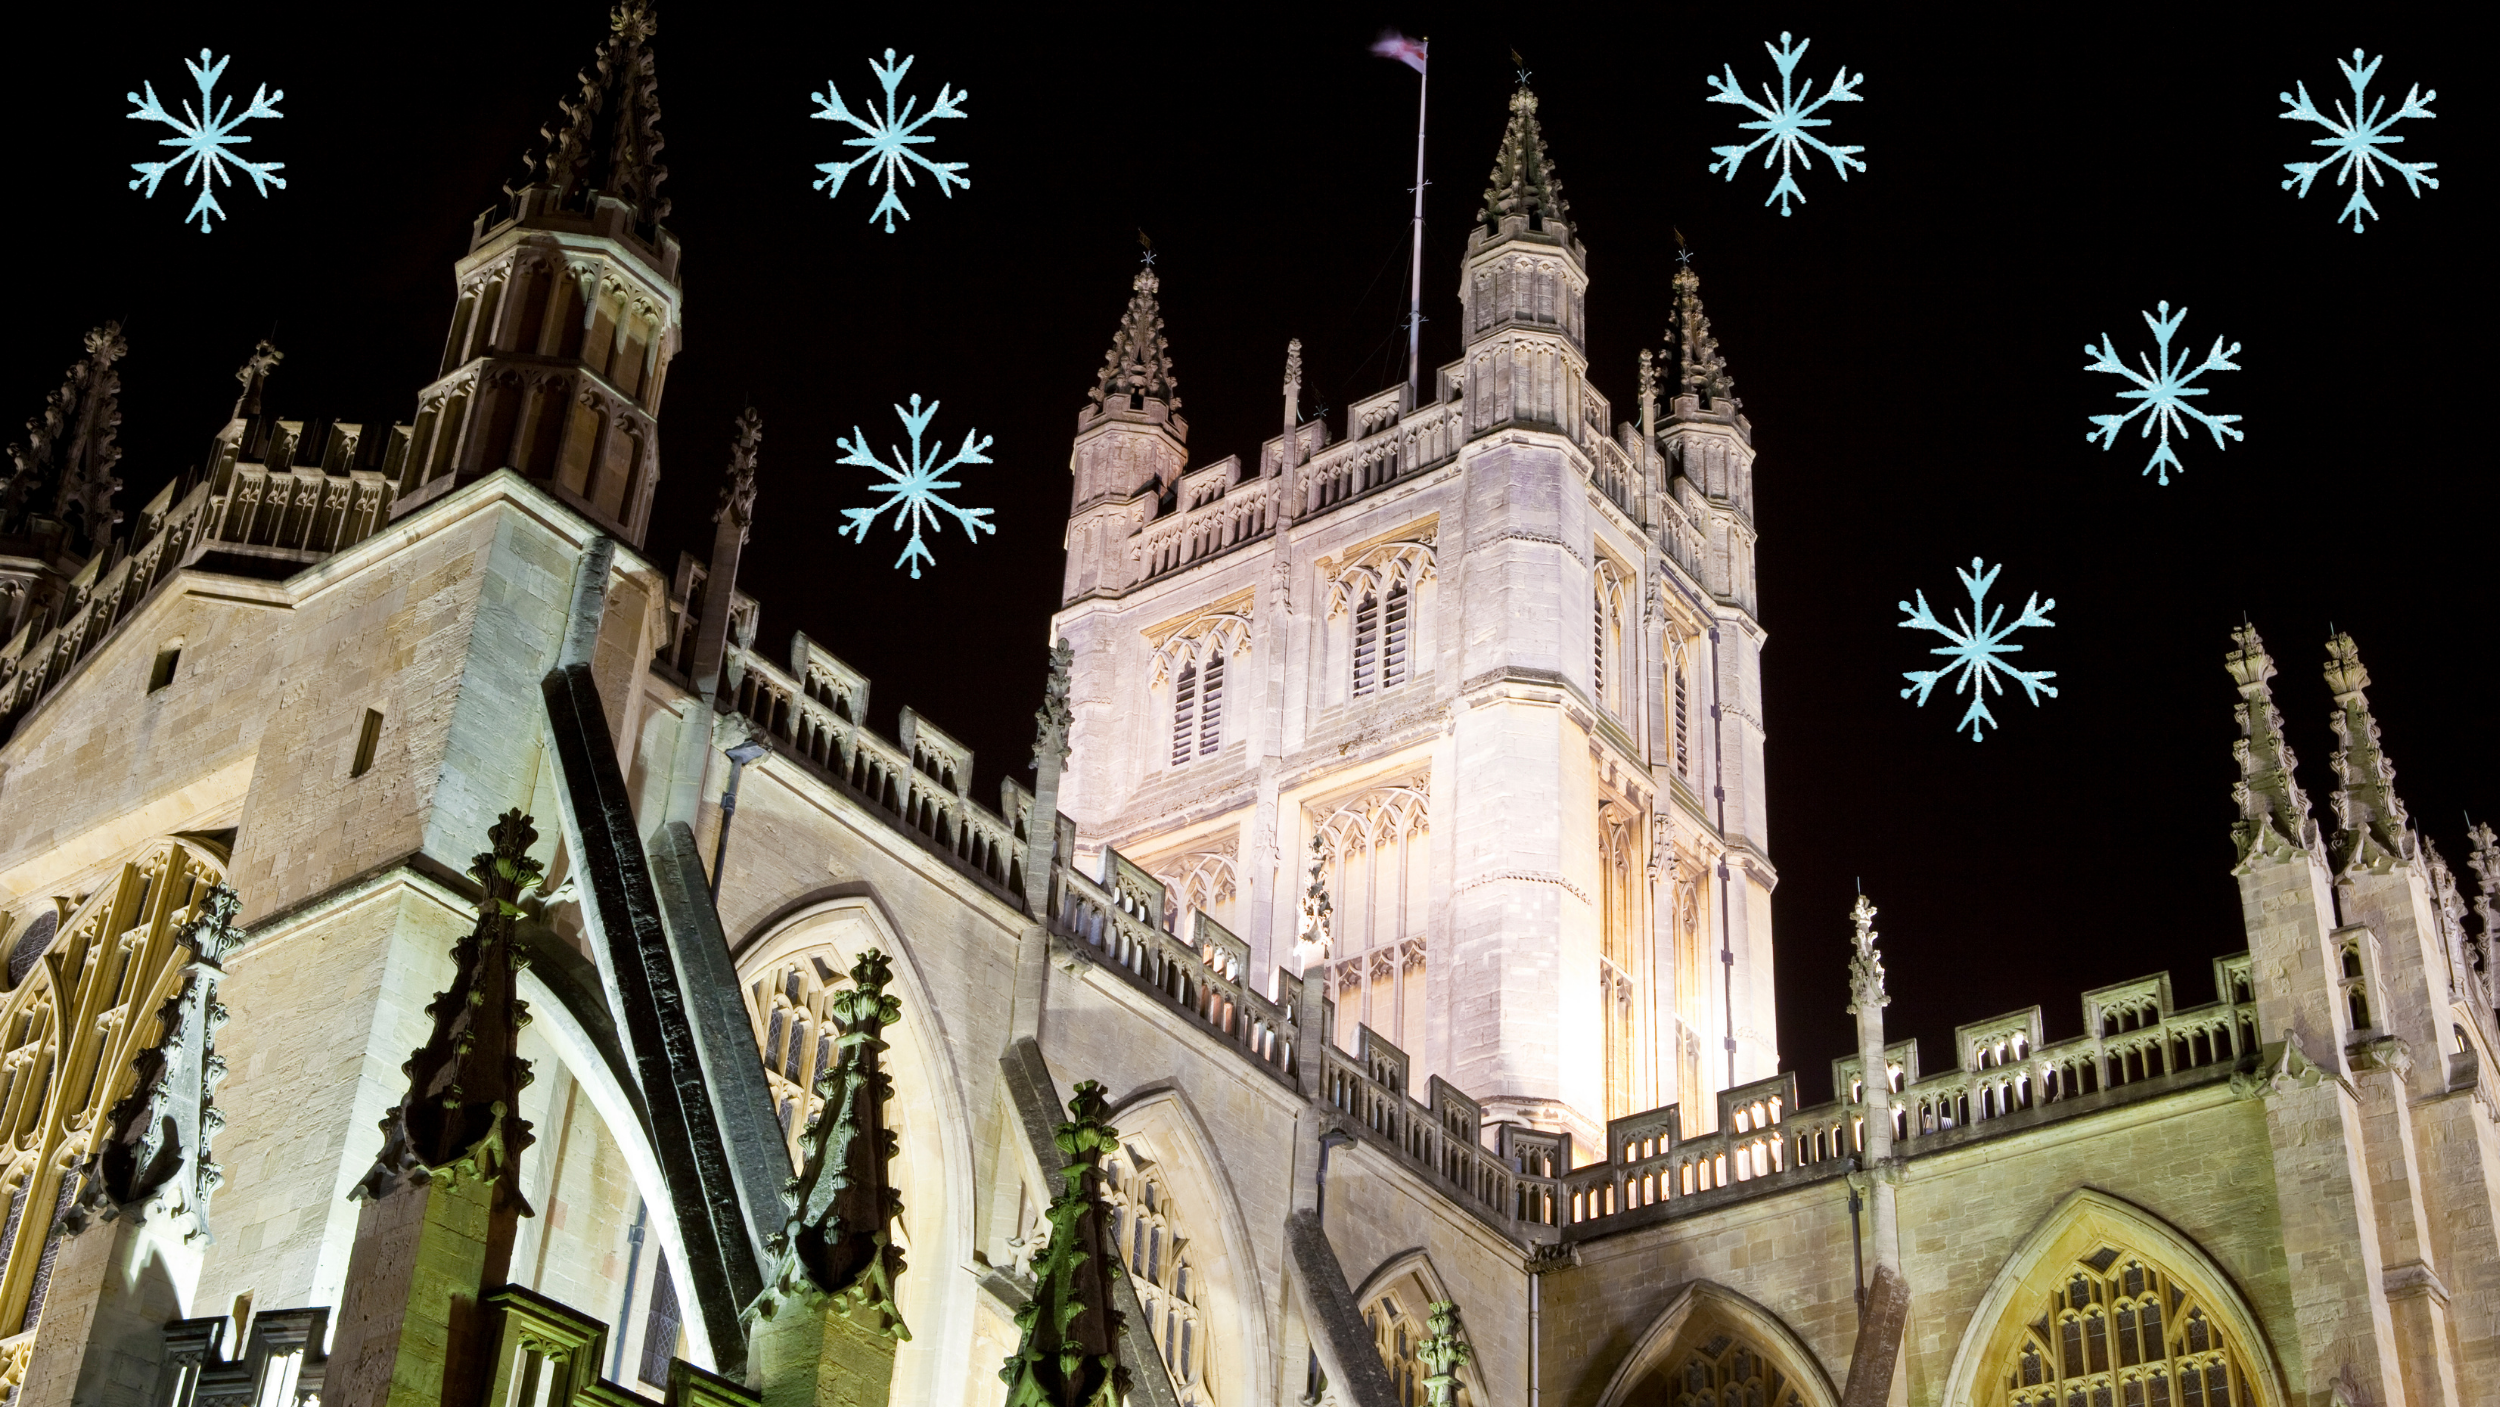 A photo of the Bath Abbey at night, with cartoon snowflakes above